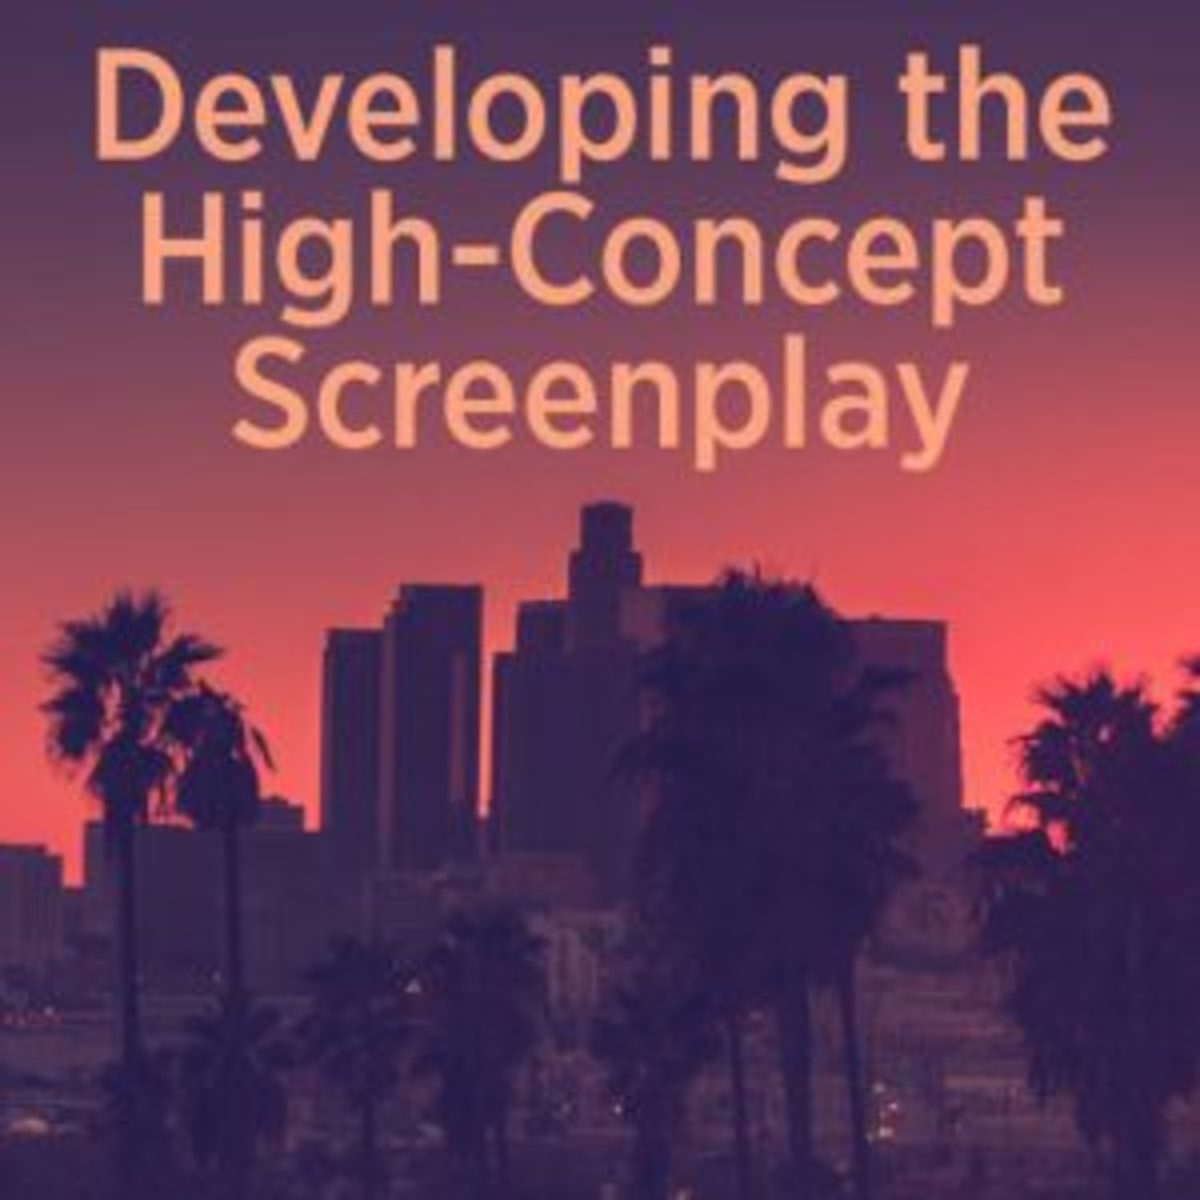 Story ideas that are high concept are key. But Jon James Miller explains how executing a high-concept screenplay is harder than you think.